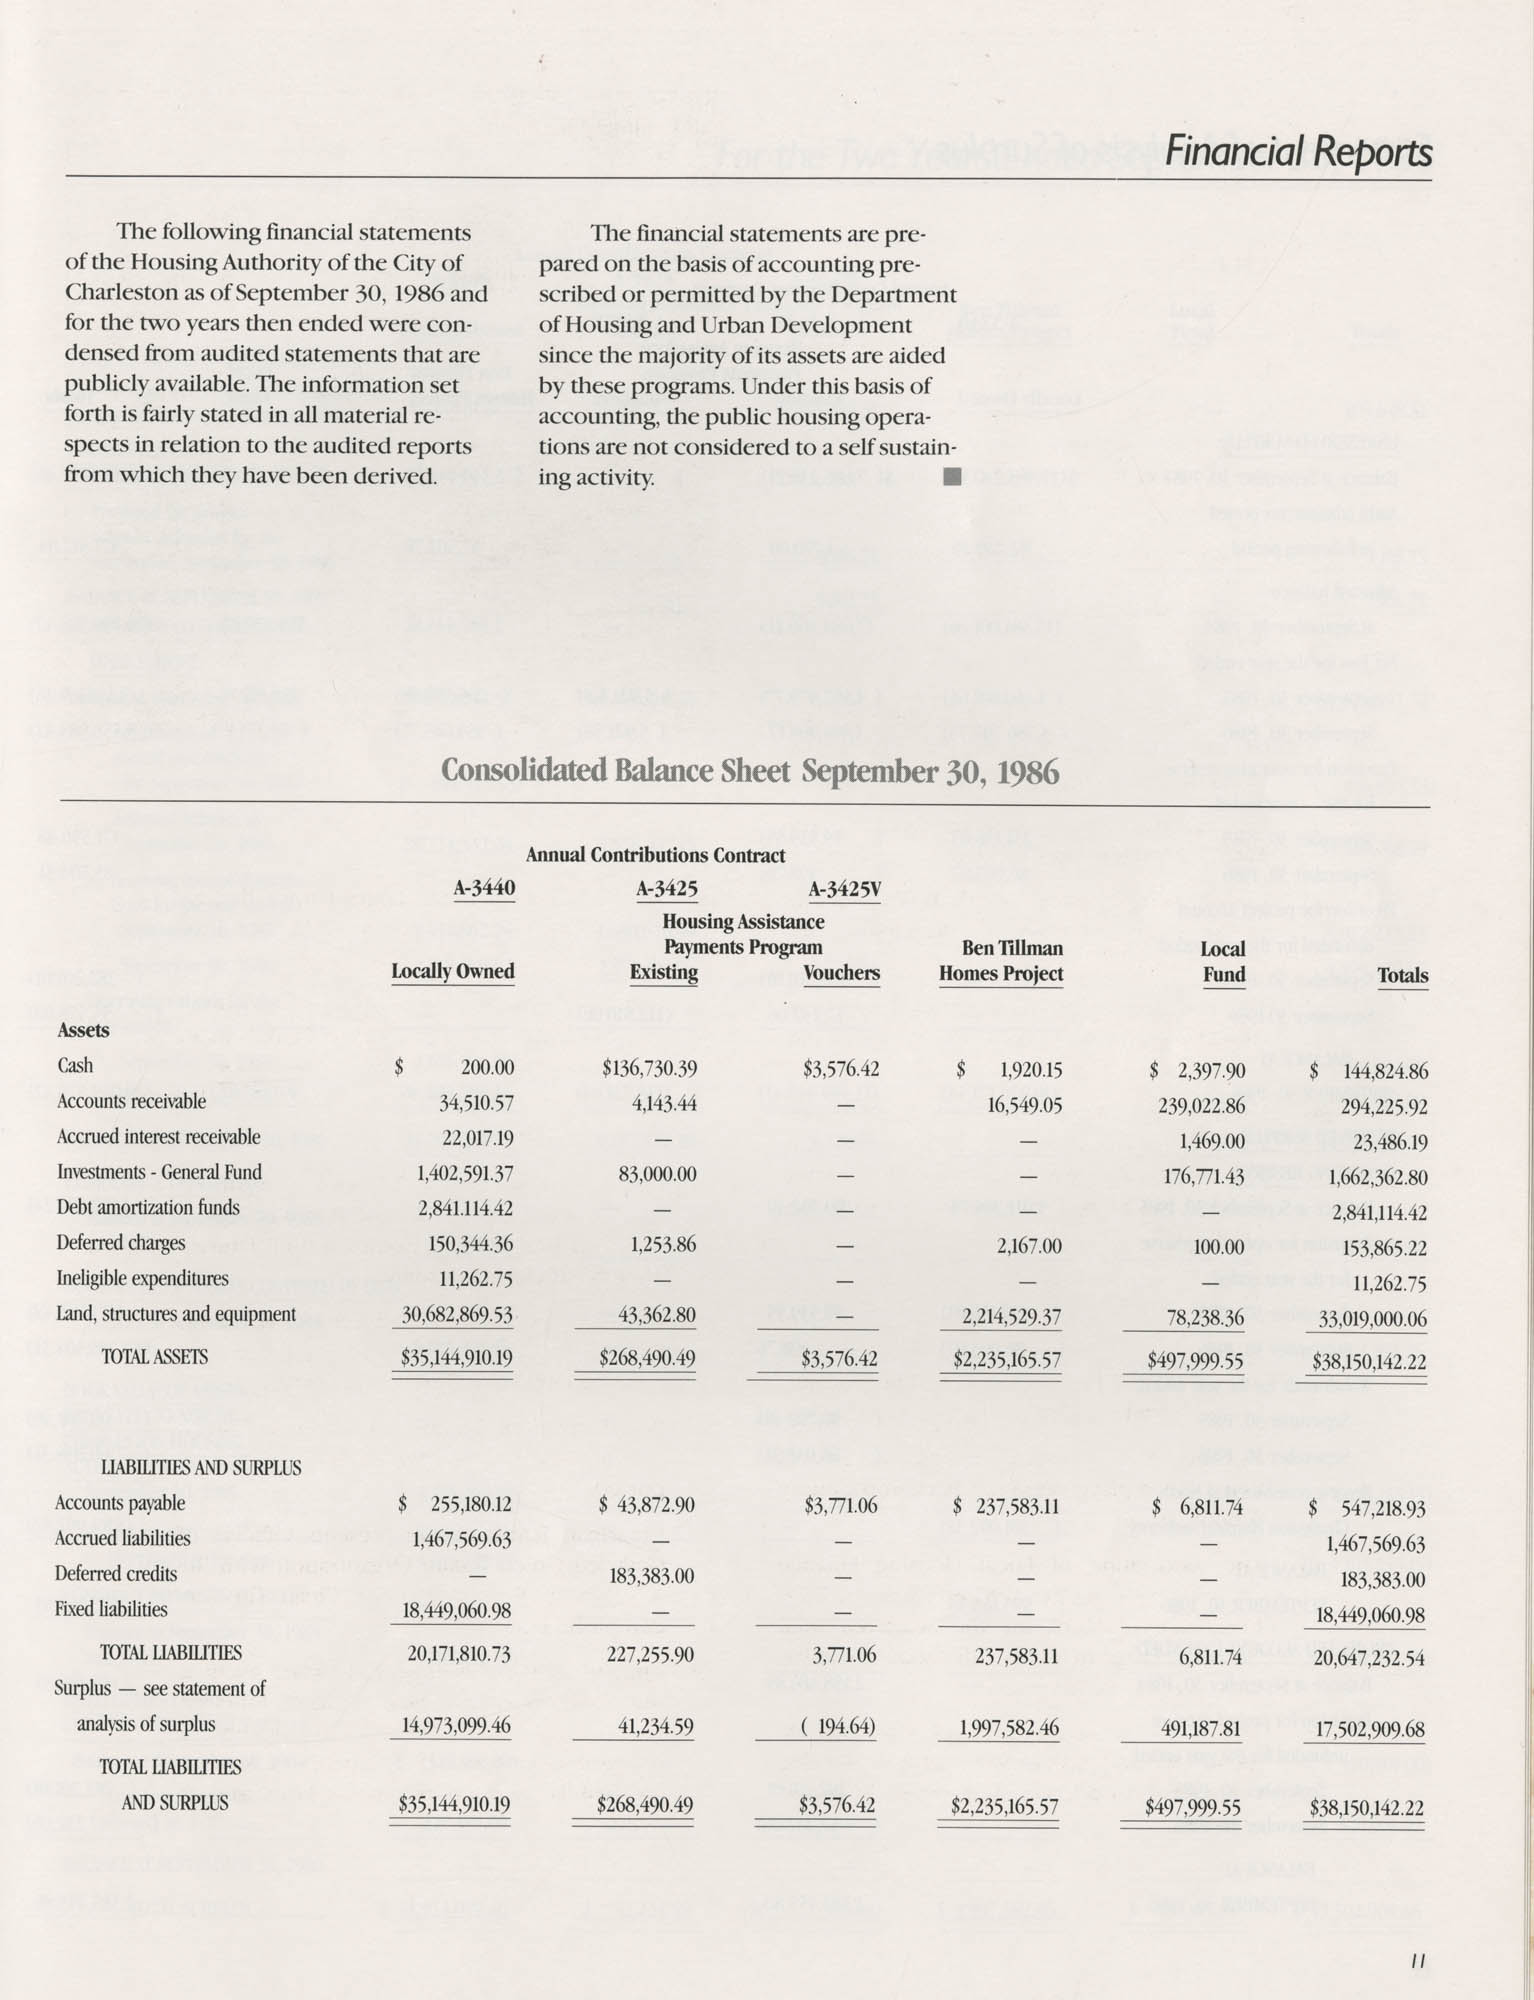 1986 Annual Report, The Housing Authority of the City of Charleston, Page 11